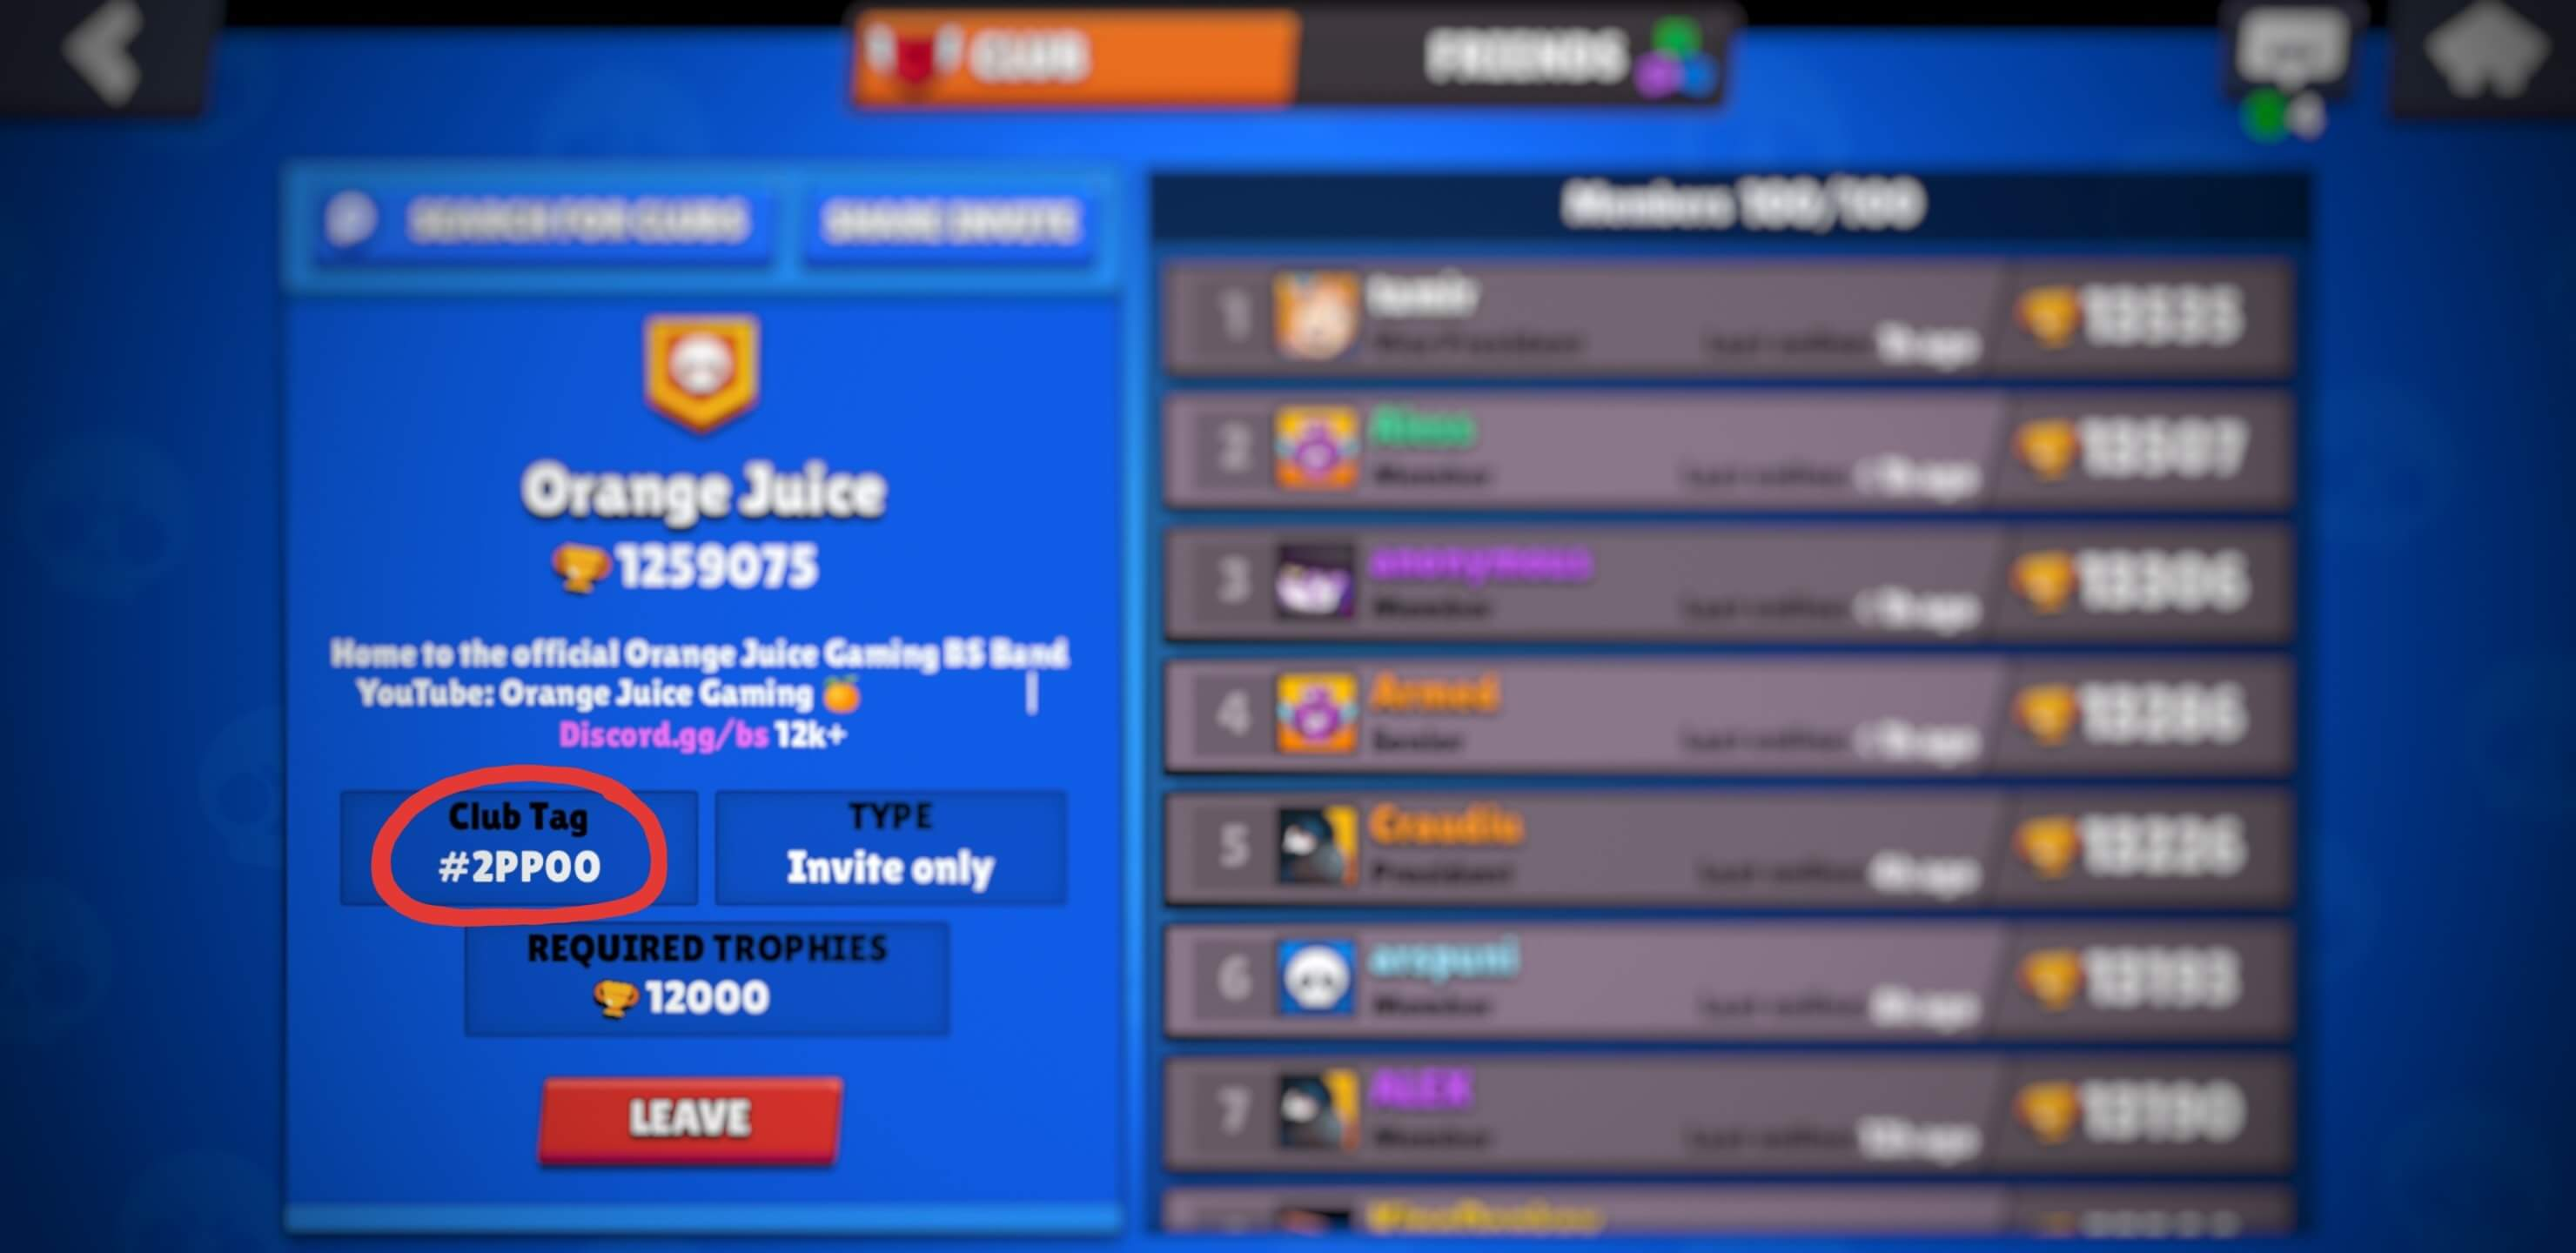 Find your Brawl Stars club tag here.